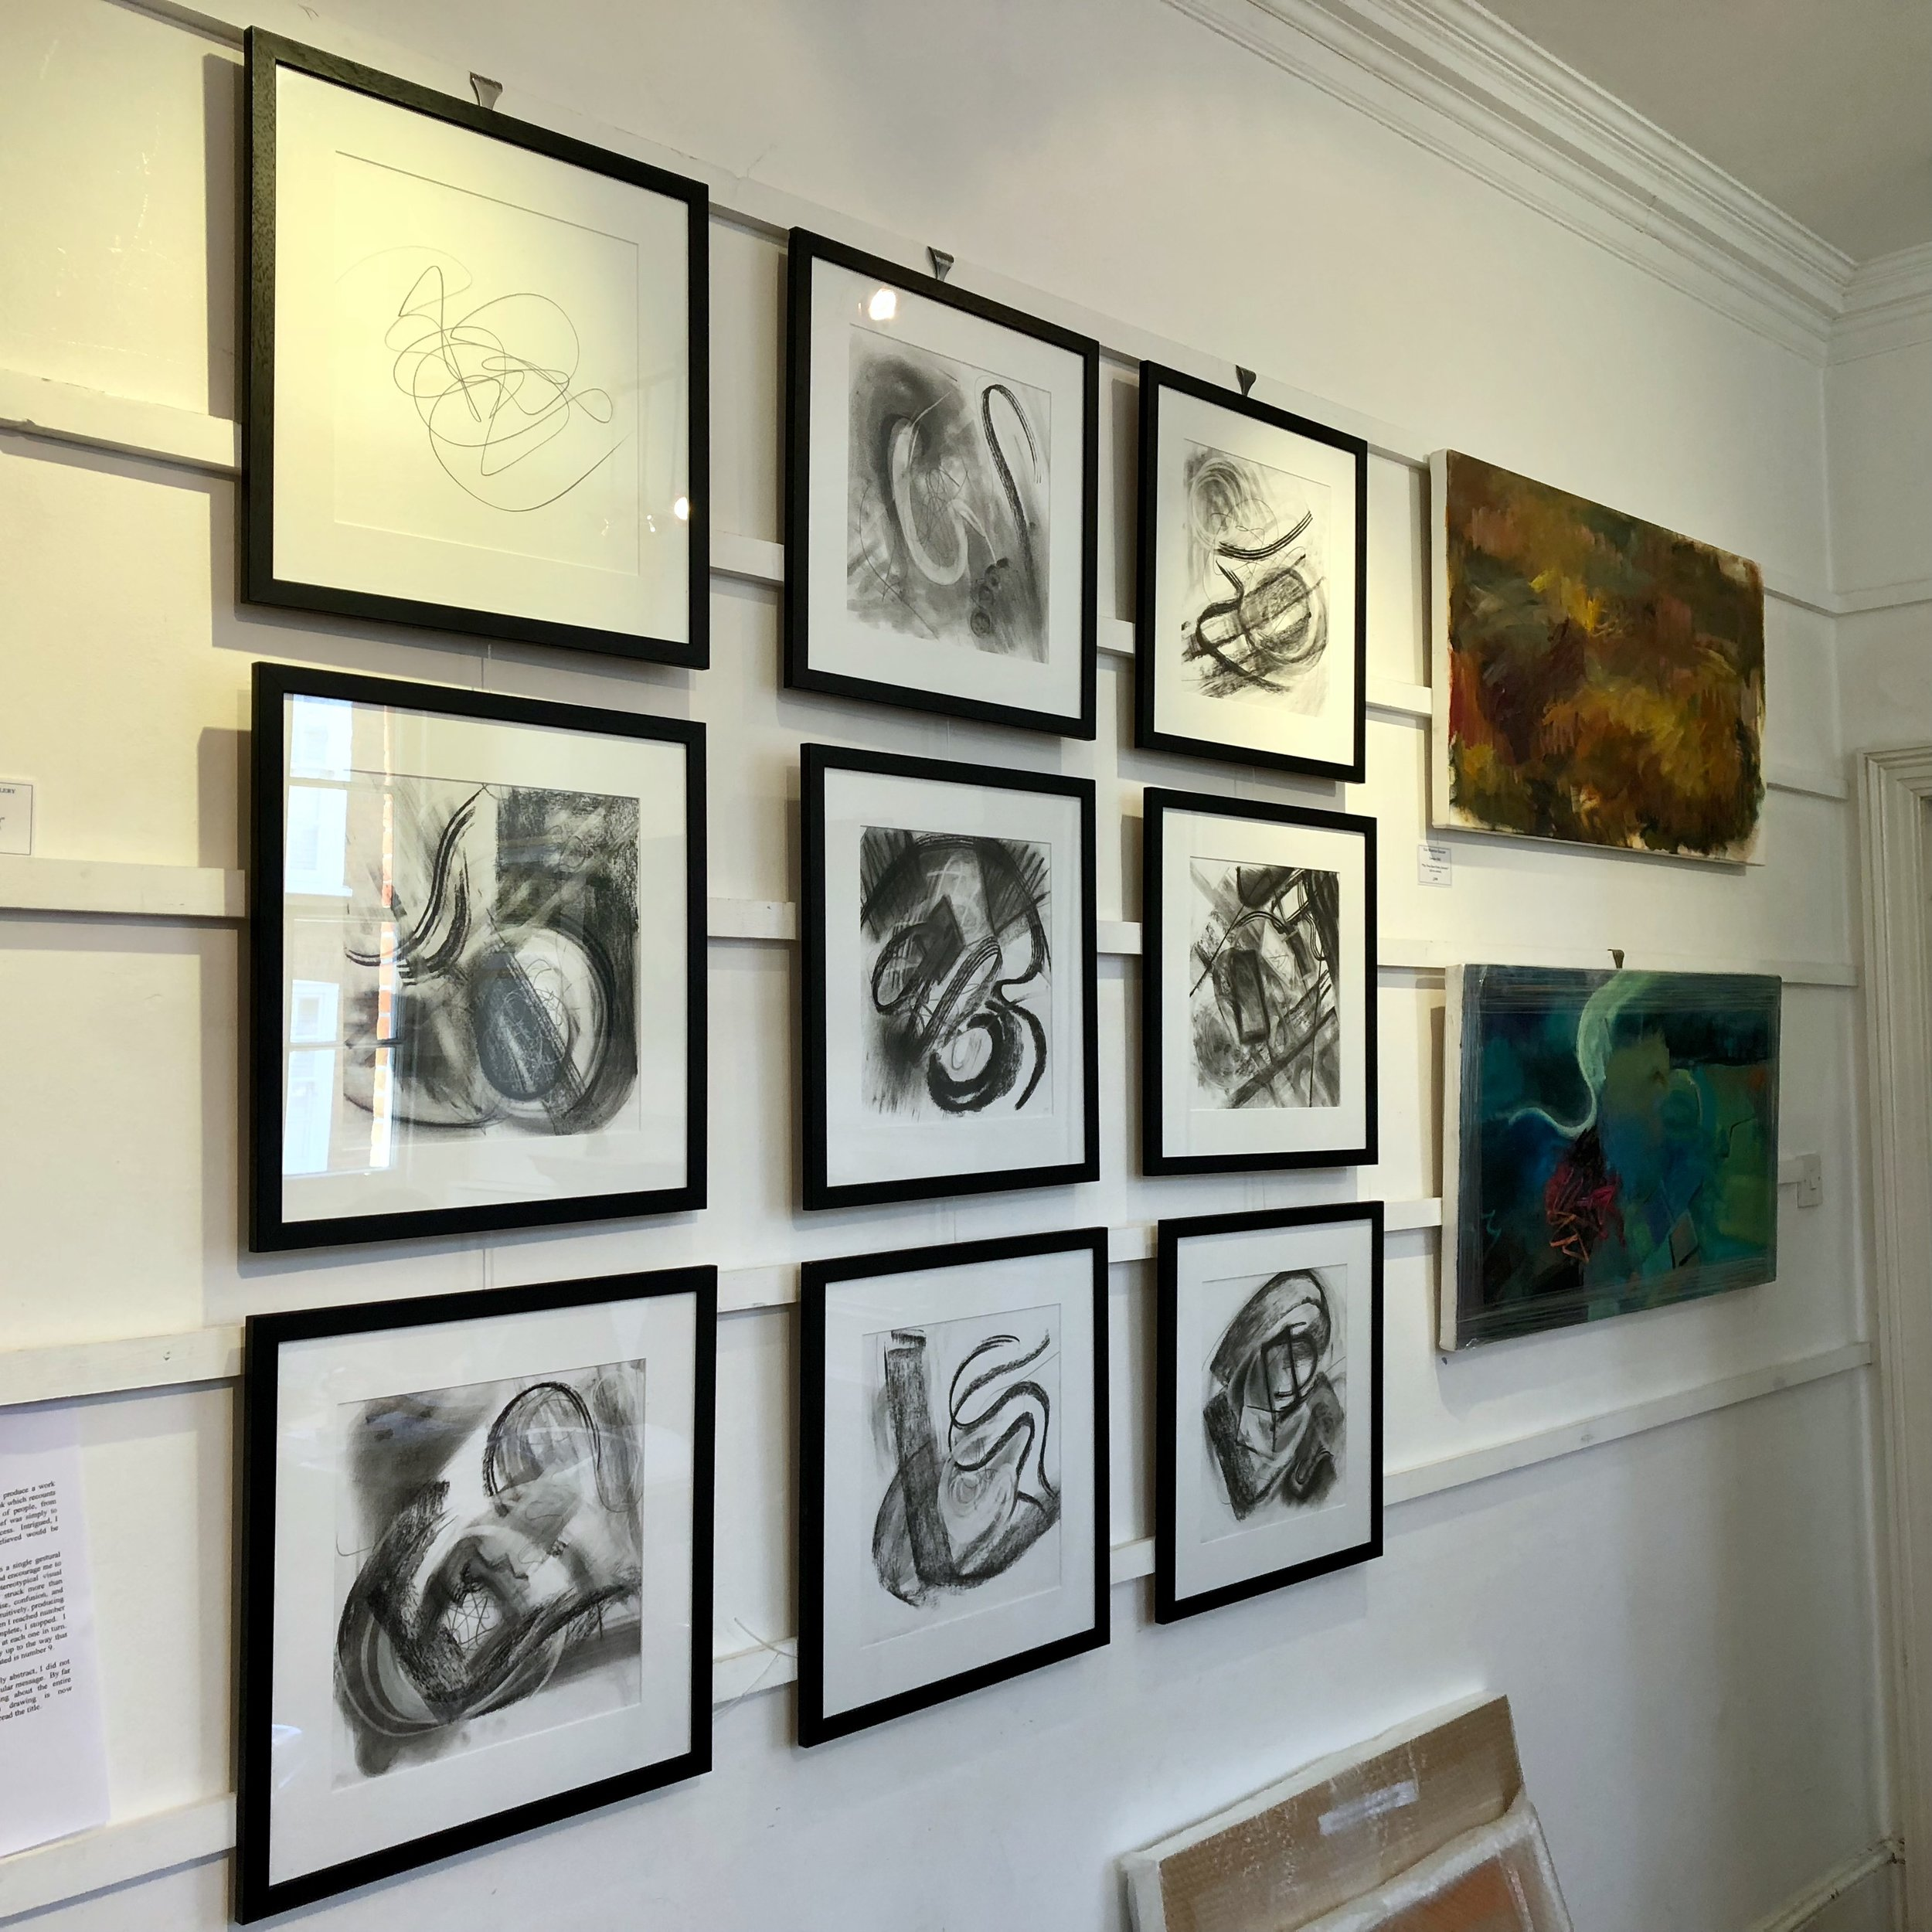 Annunciation Studies - Exhibited at the Minster Gallery, 2018